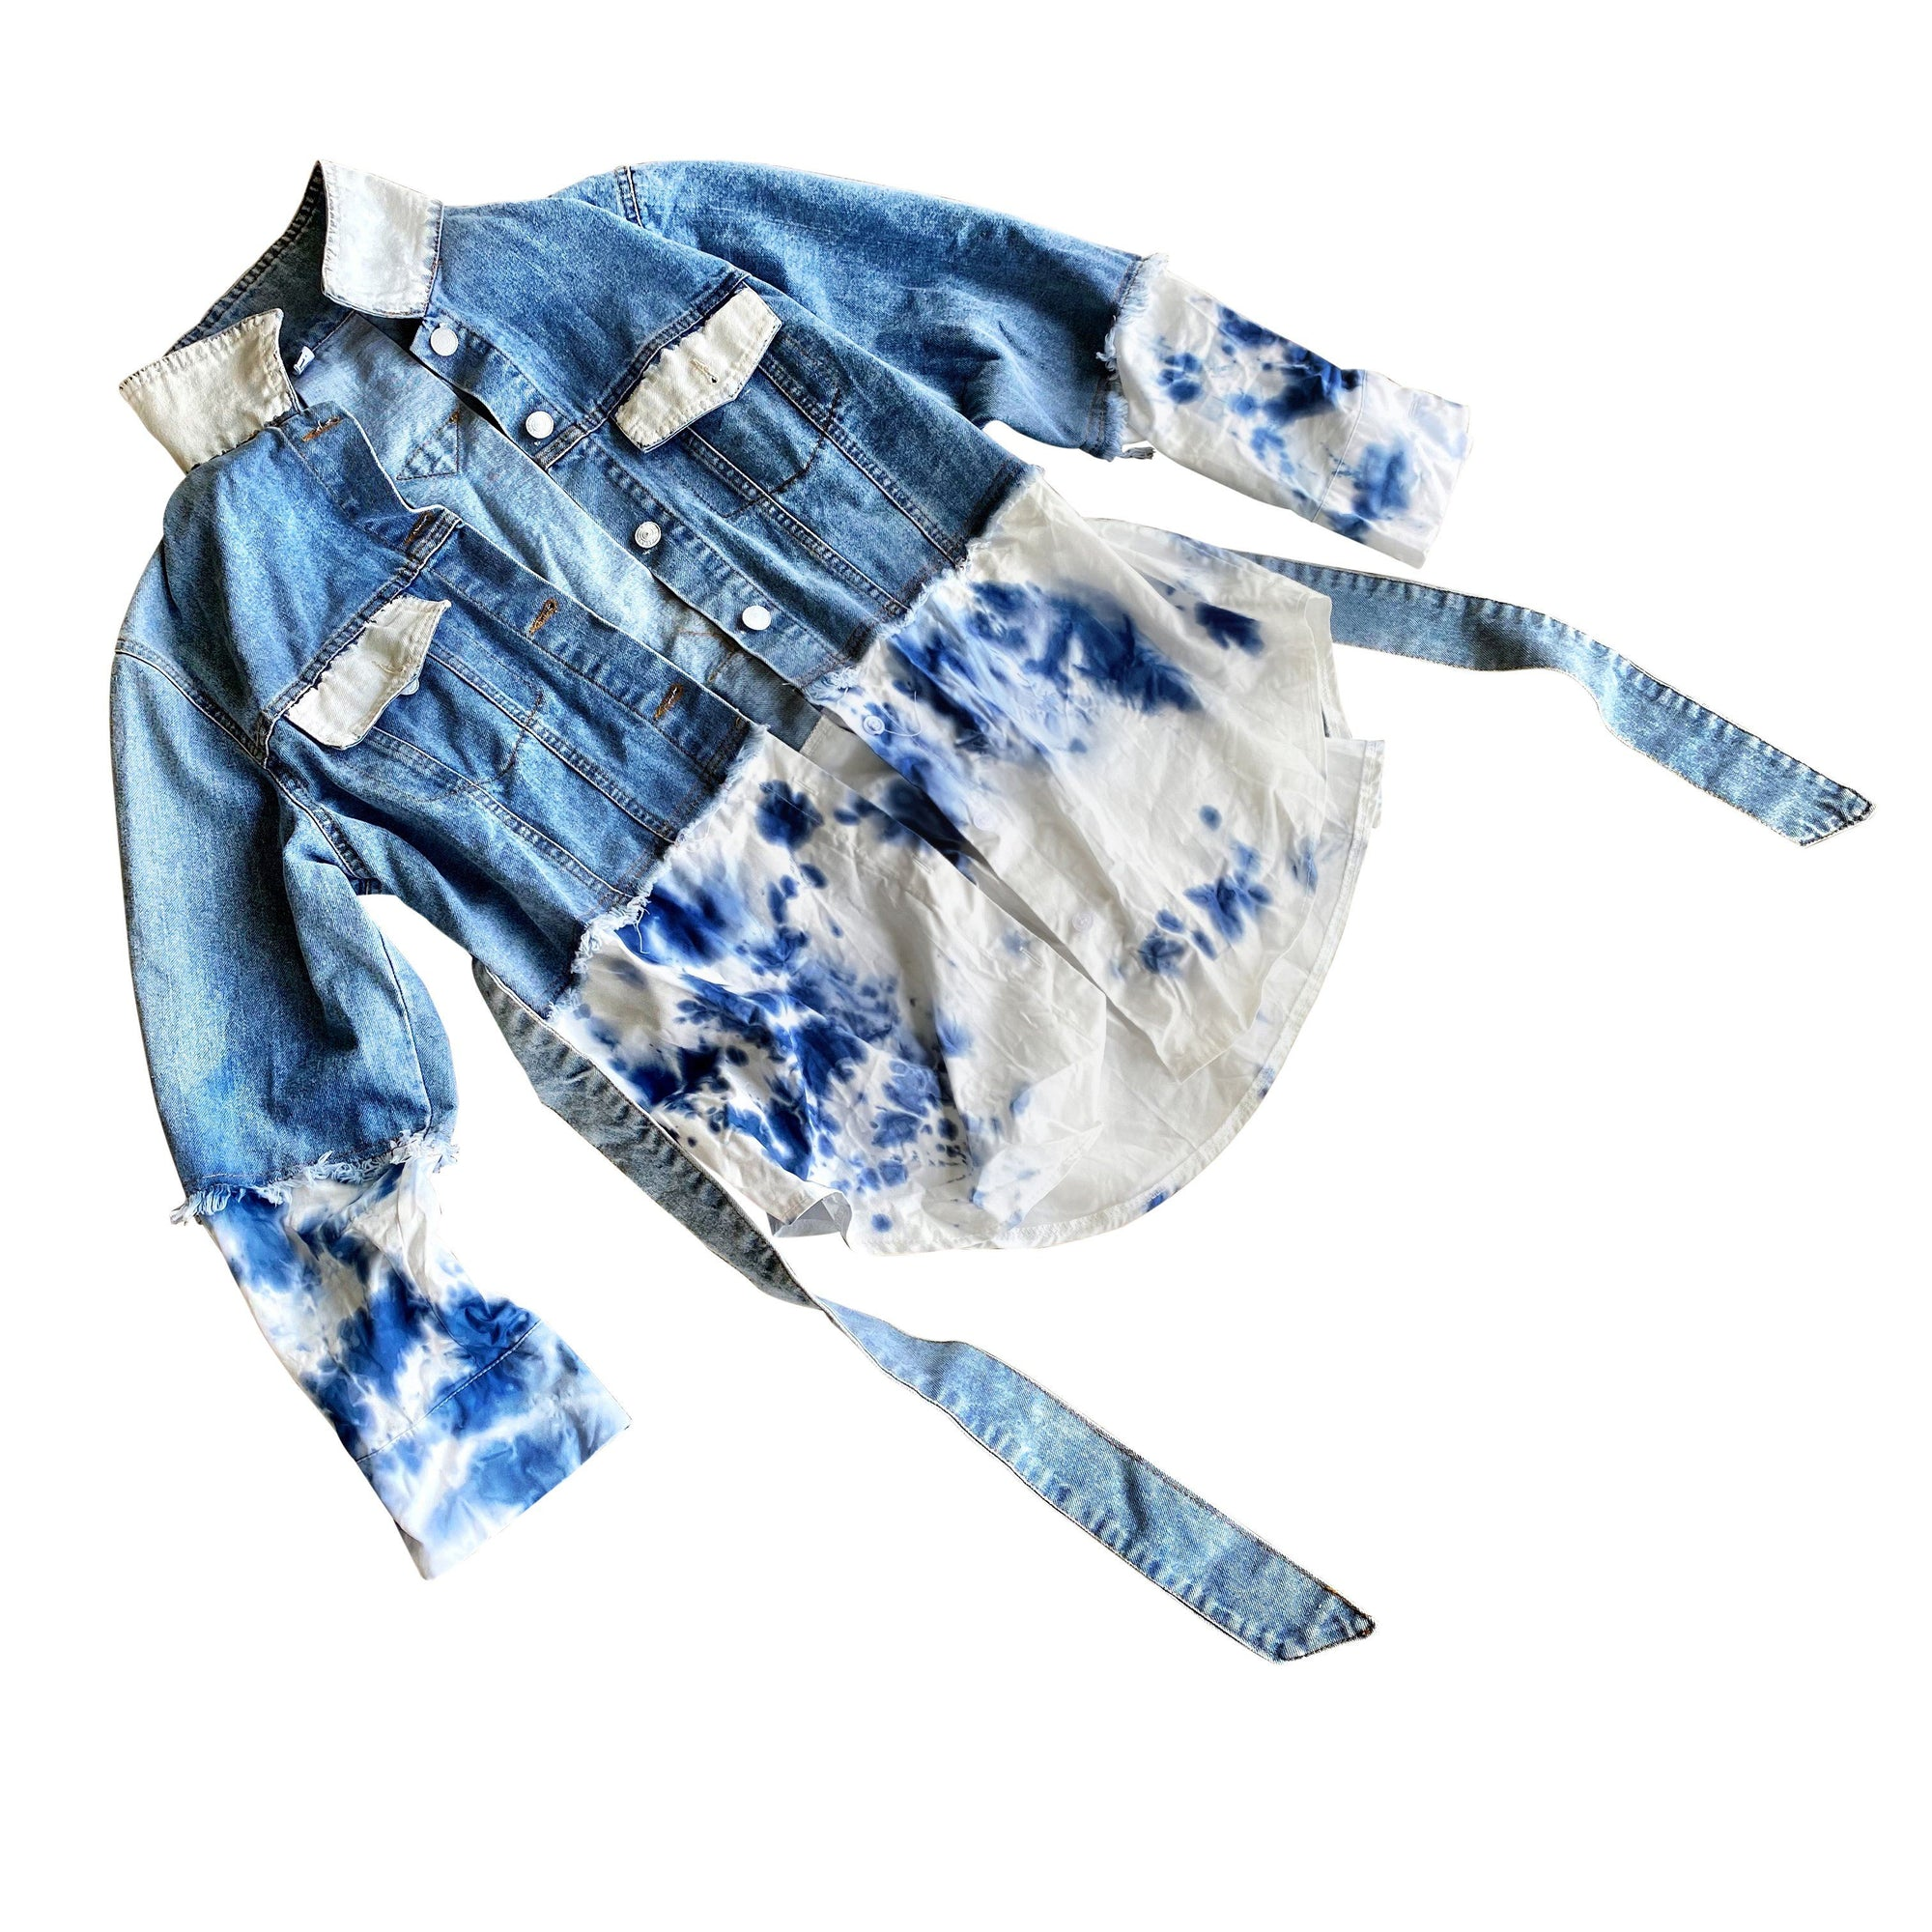 'BLUE SWIRLS' DENIM JACKET